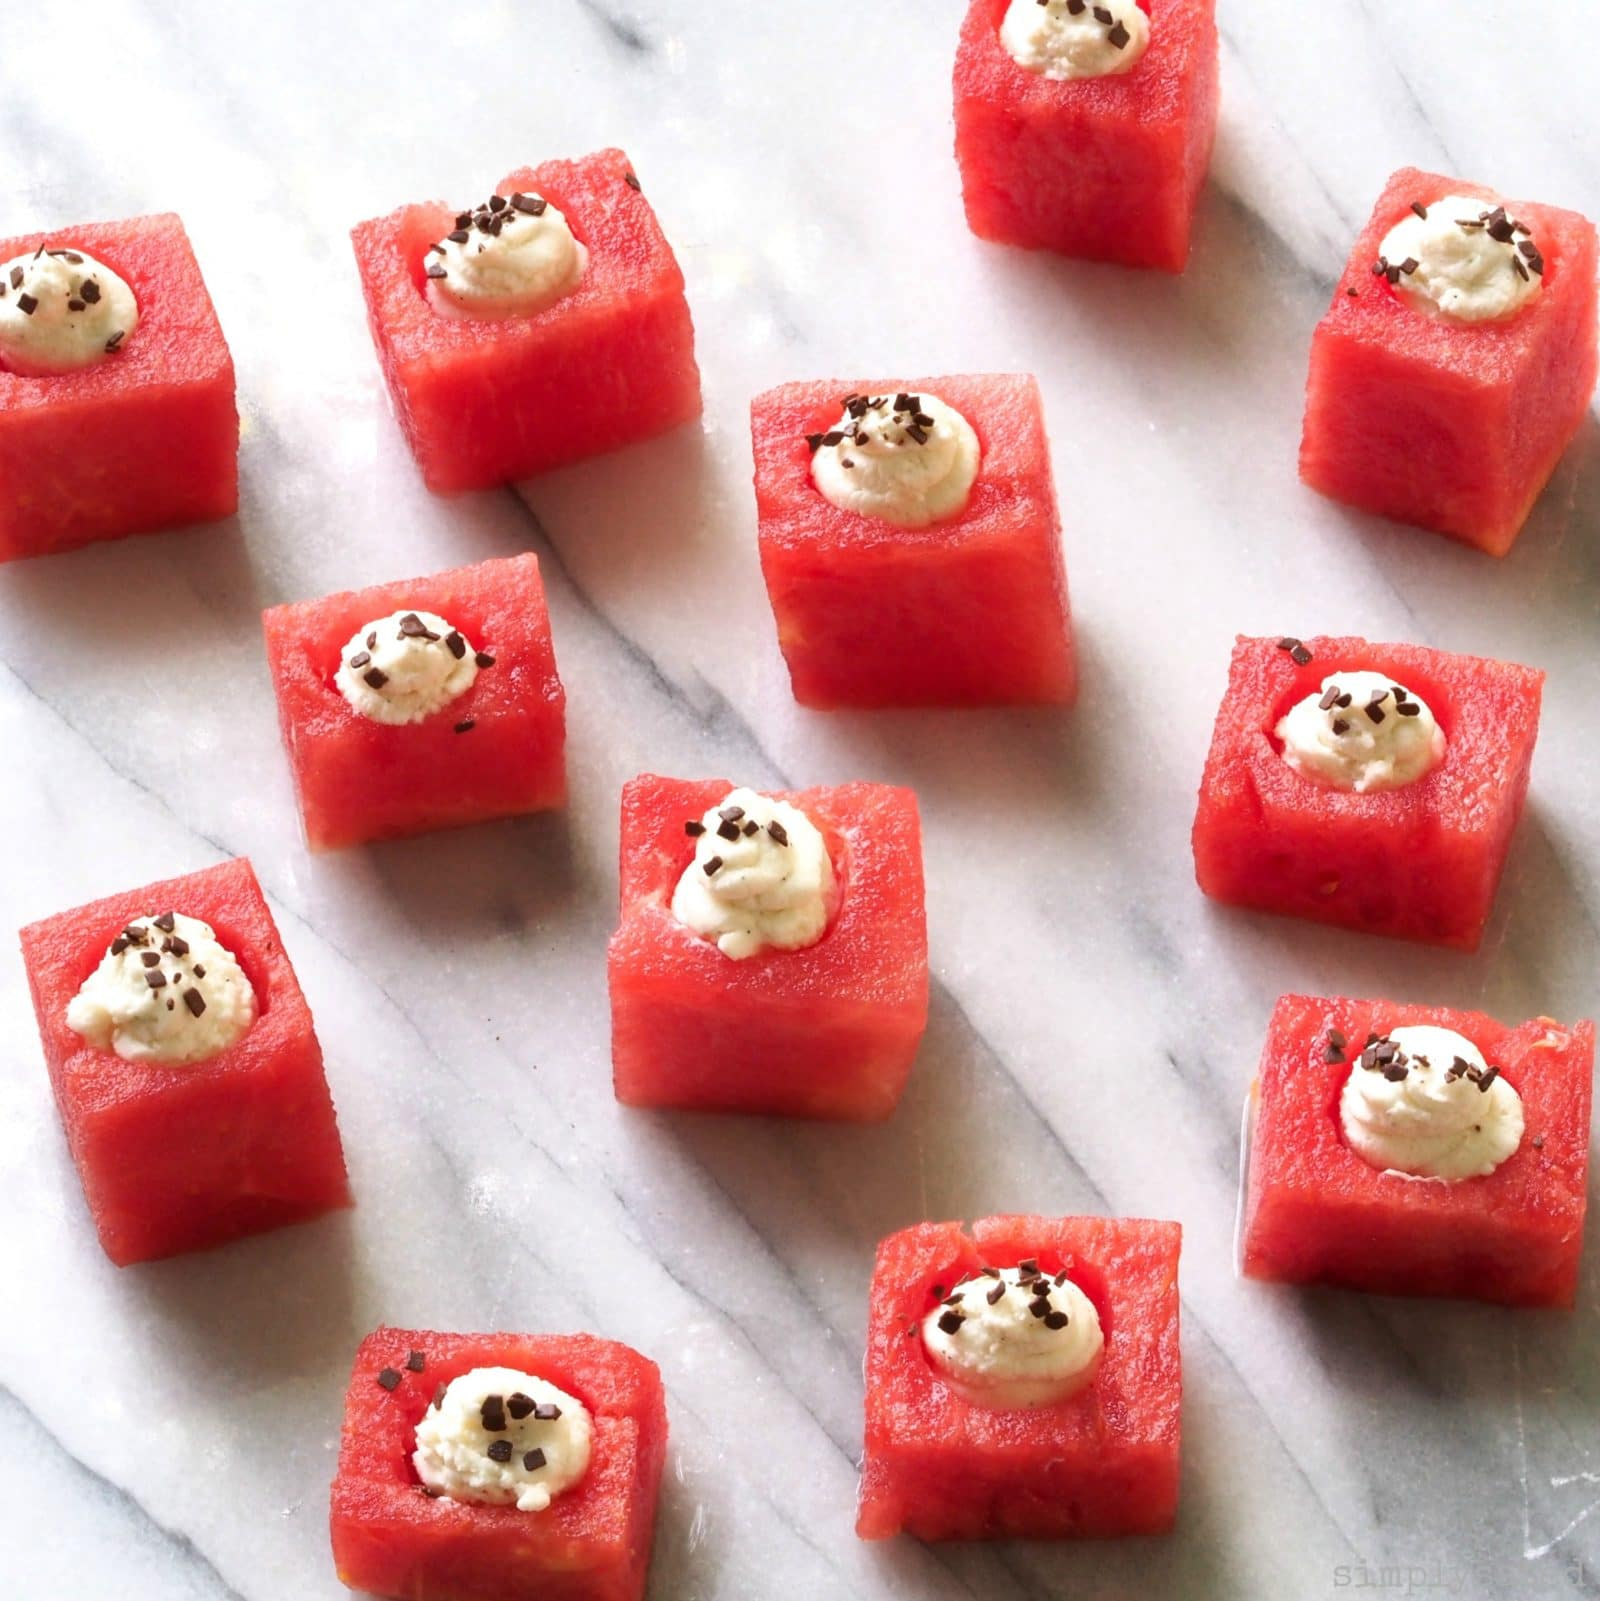 Watermelon with Mascarpone is healthy, light with a surprise in every bite. And it is a fun & delicious twist on serving this seasonal treat.